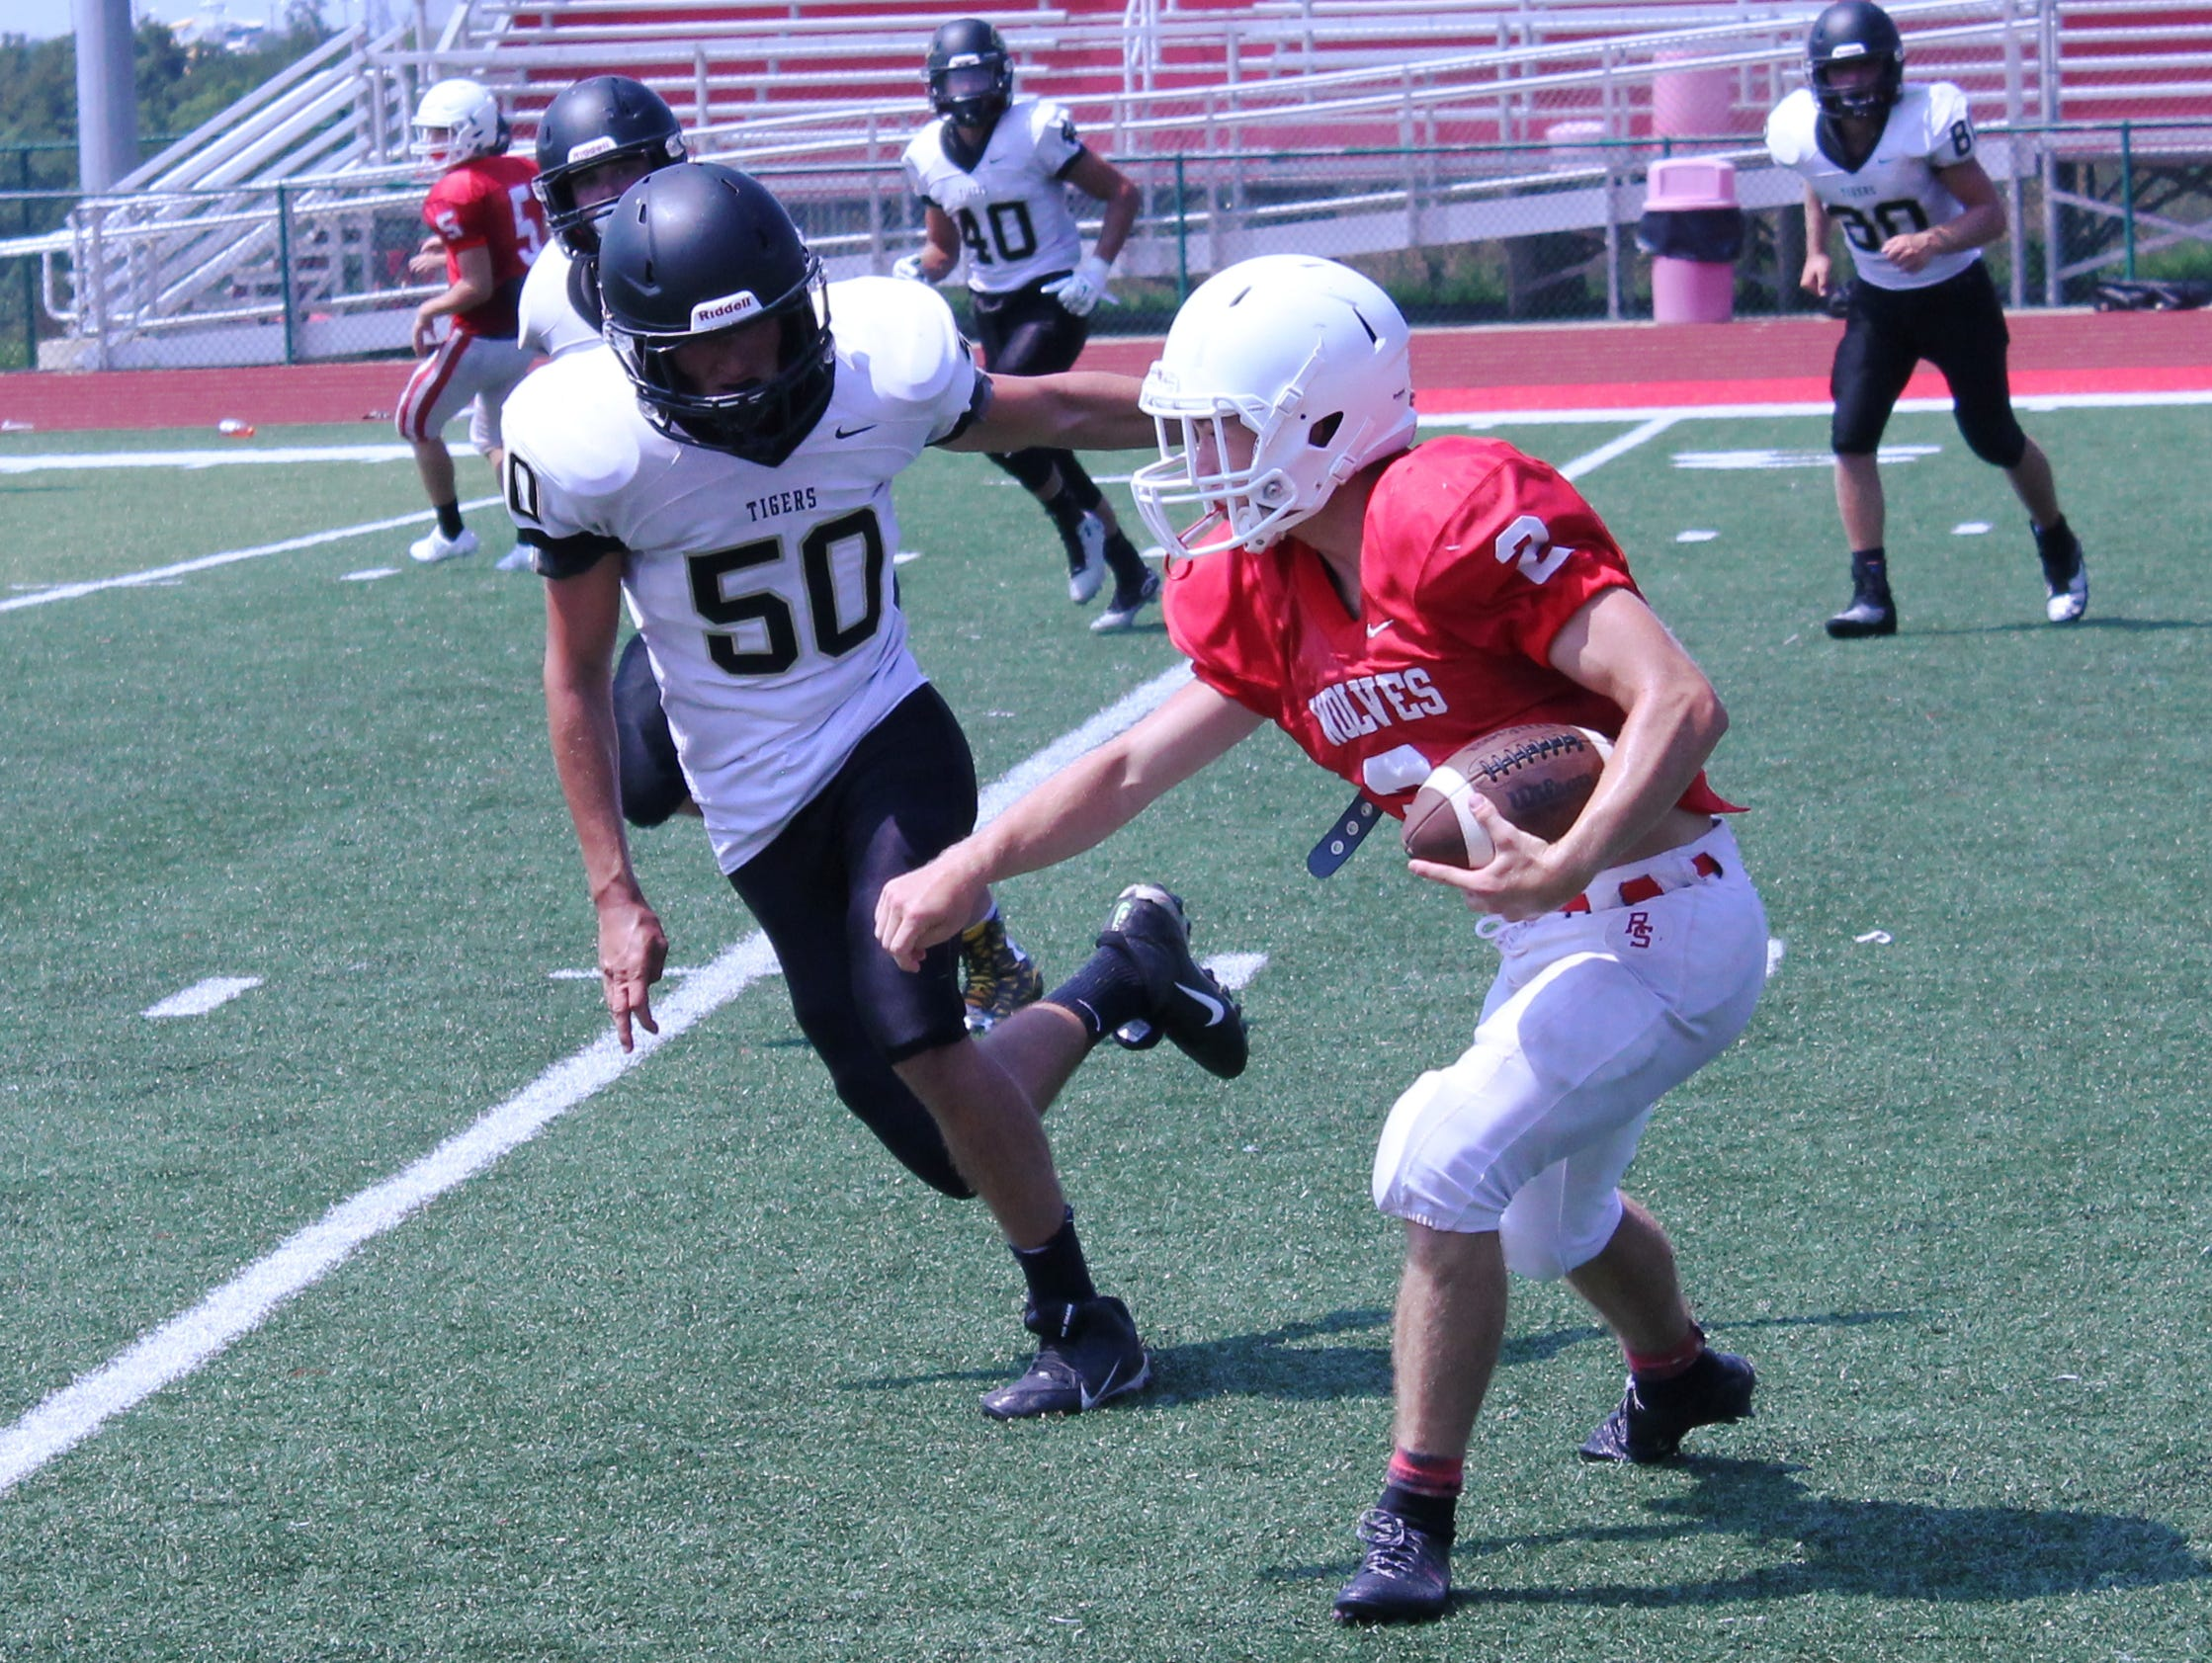 Reeds Spring wide receiver Joel Gertson (right) gains yards after the catch against the Versailles defense during a football scrimmage at the 2016 Branson Team Camp at Pirate Stadium.